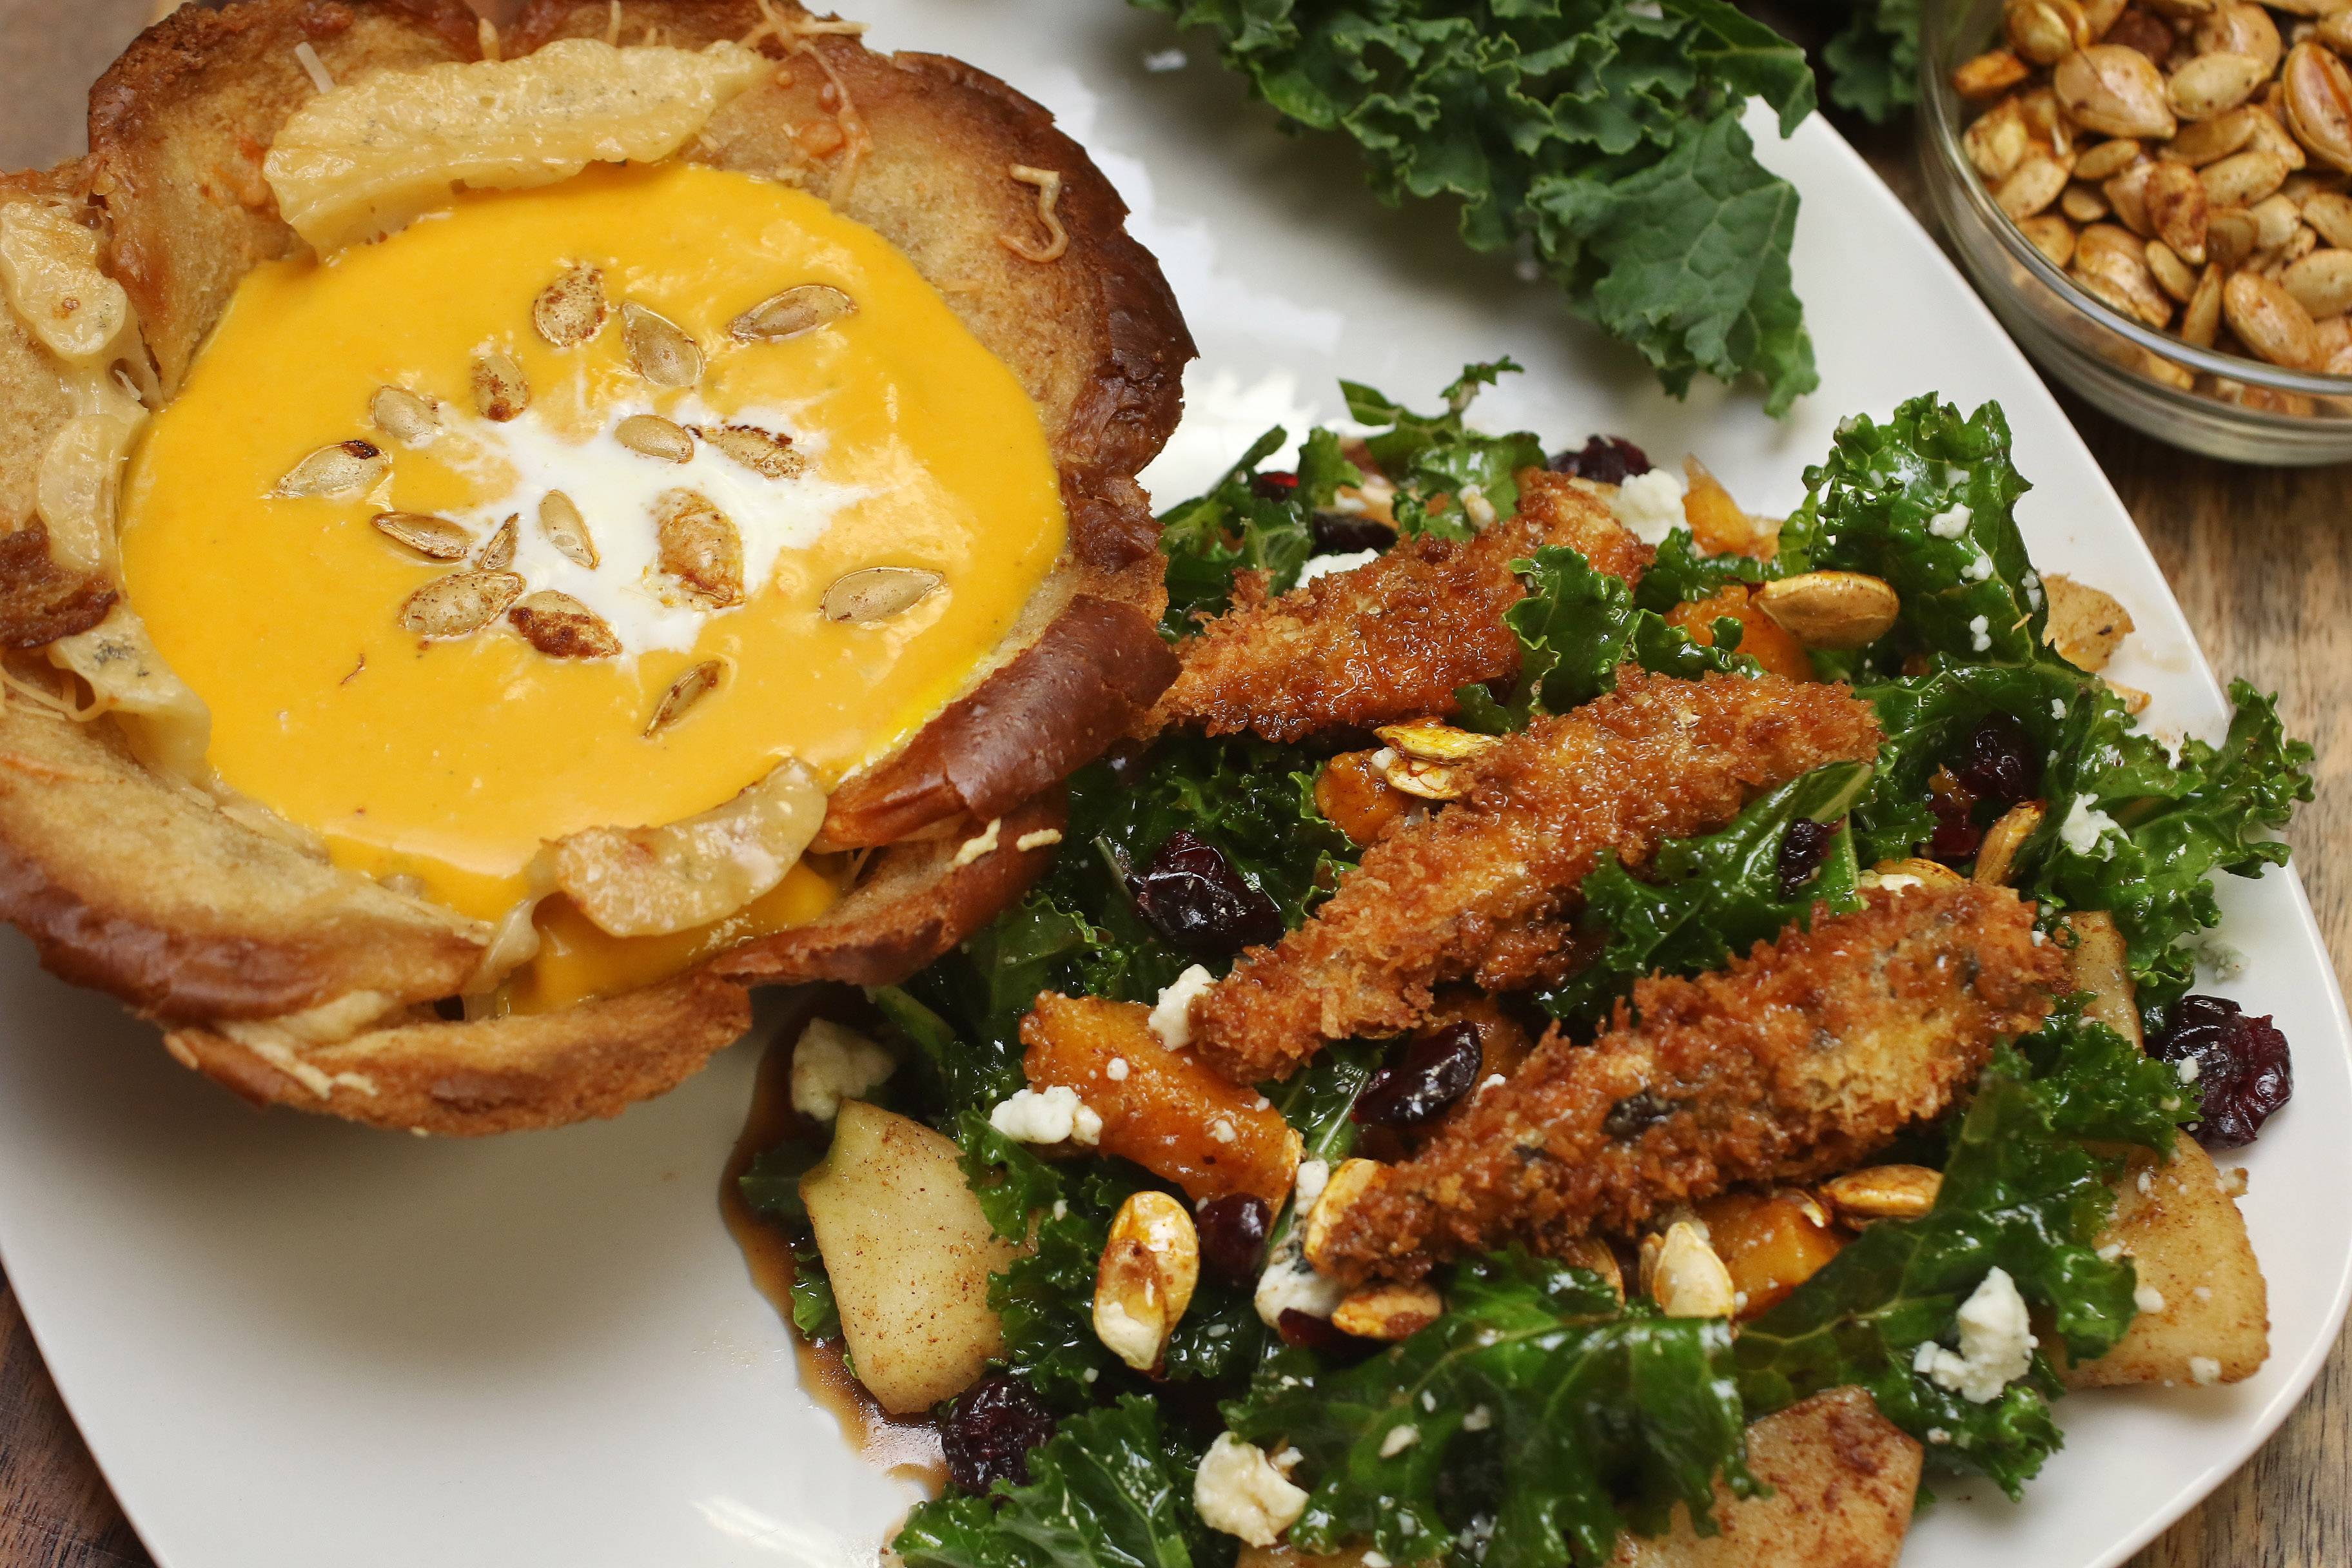 Gilbert R. Boucher II/gboucher@dailyherald.comSweet heat panko-crusted sardines and kale salad with maple vinaigrette and roasted squash bisque created by Darla Marie Pitts of Chicago for the Cook of the Week Challenge.